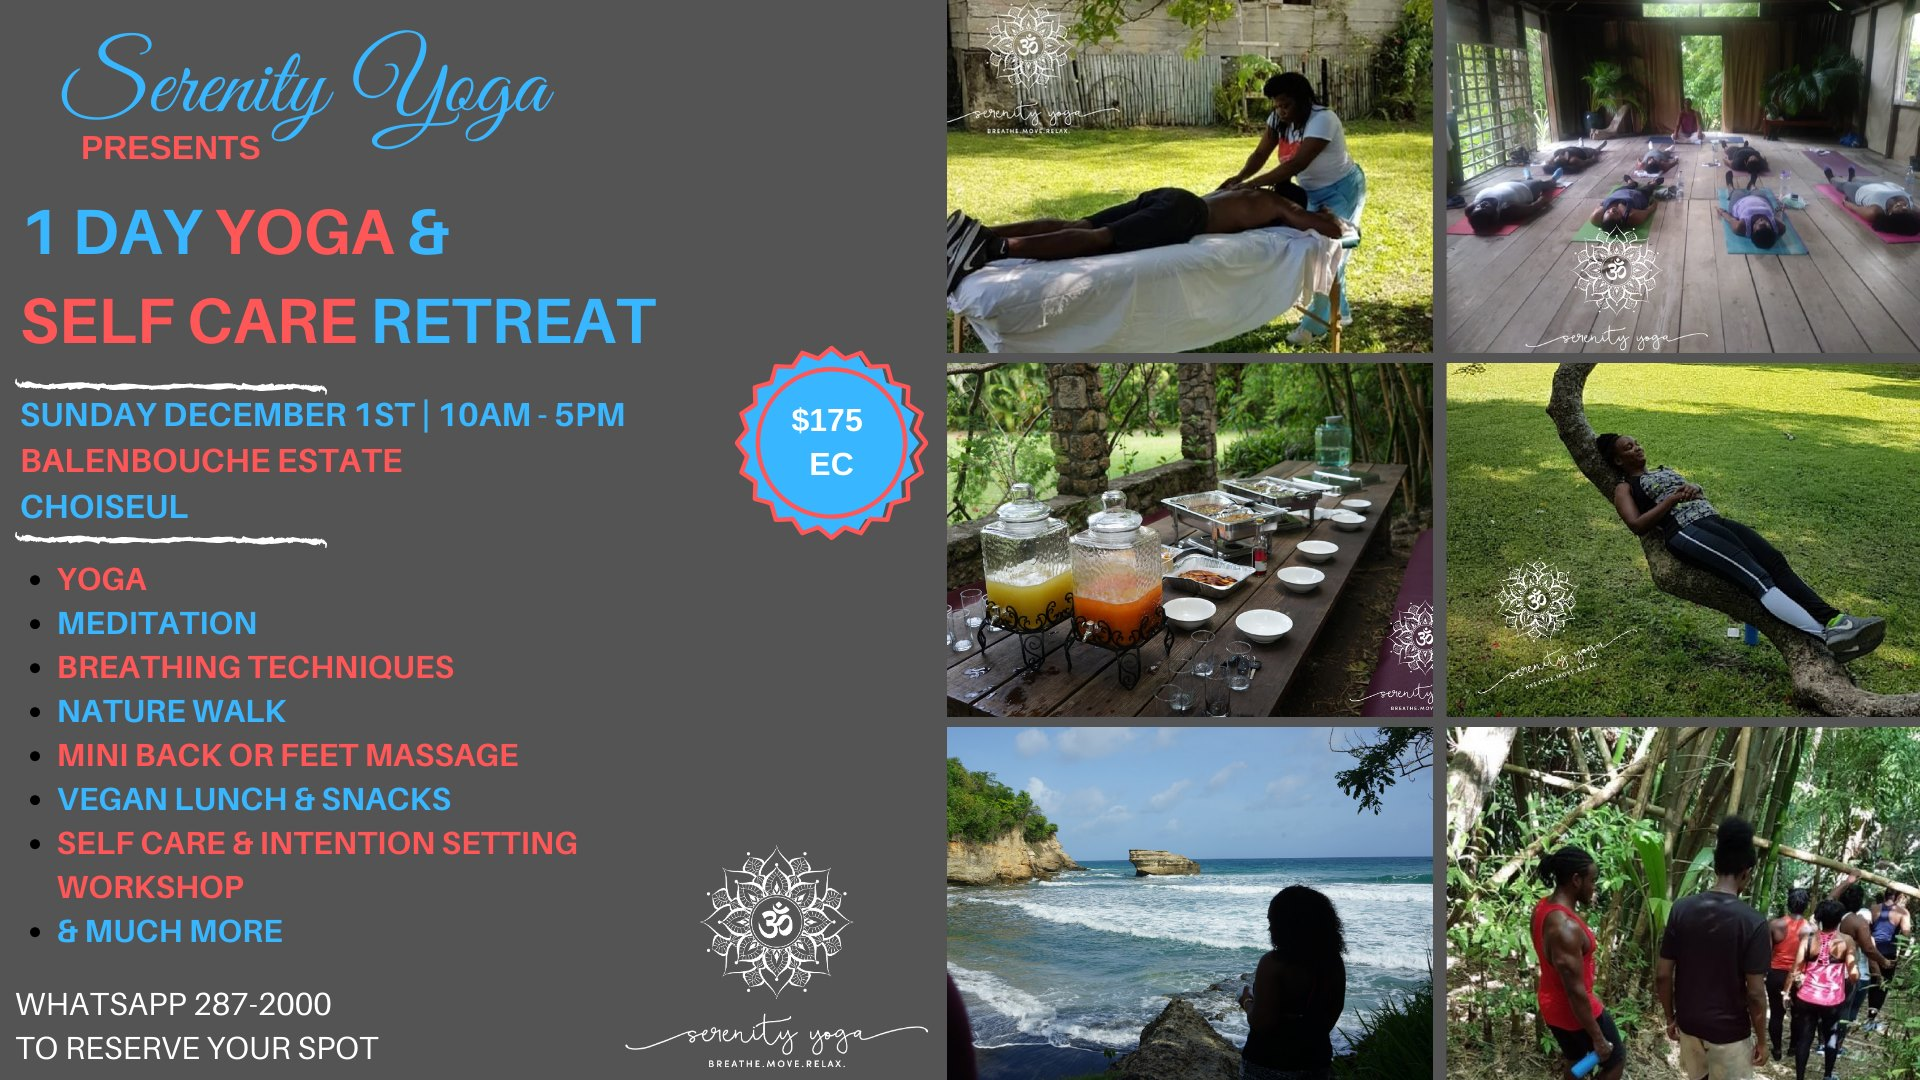 serenity yoga 758 1-day yoga and self-care retreat at balenbouche estate st lucia